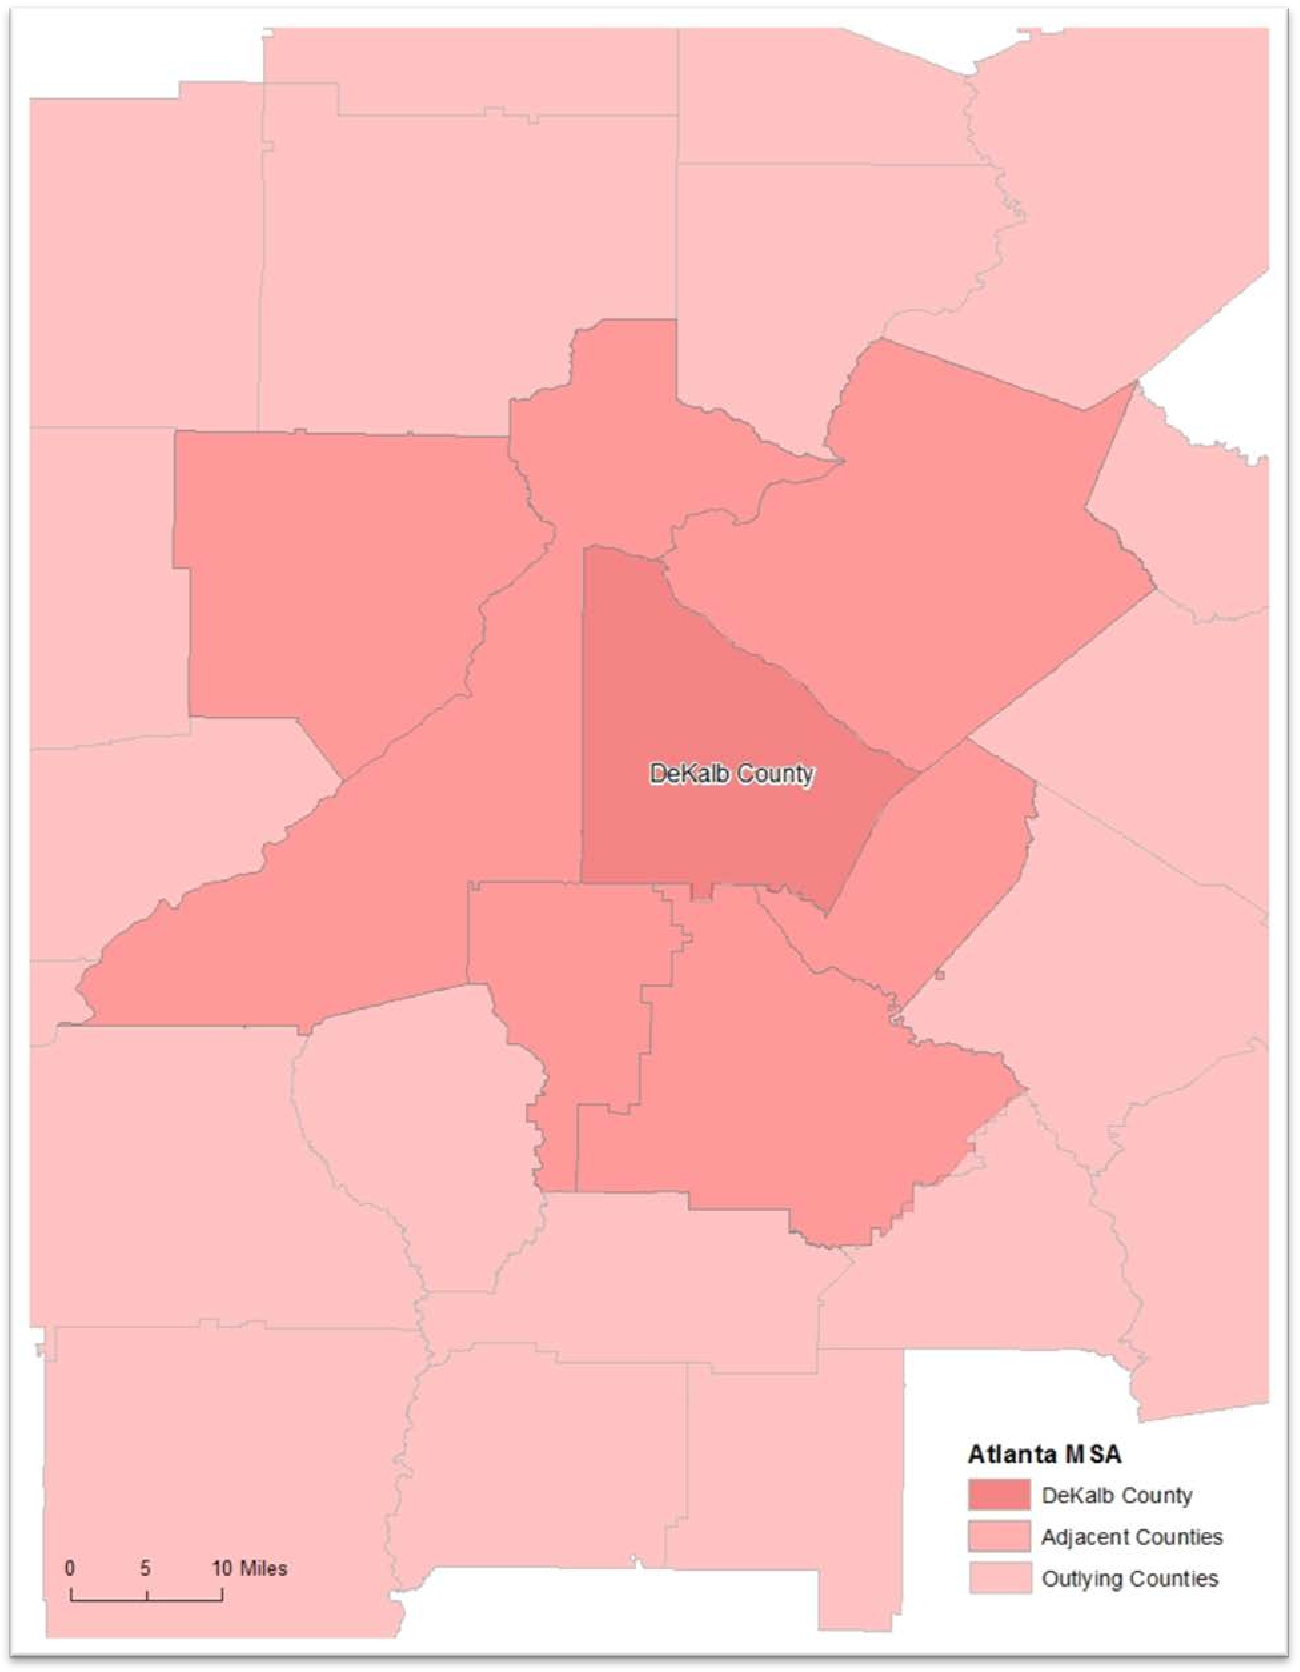 PDF] GEOGRAPHIC VARIATION OF RADON GAS CONCENTRATIONS IN ... on georgia home, georgia pollution map, georgia climate map, murray county georgia map, georgia co map, state of georgia regional map, atlanta georgia map, georgia on map, atlanta zone map, georgia colors, iowa dot zone map, georgia country physical map, georgia soil map, georgia usa physical map, show counties in georgia map, georgia zone map, atlanta county zip code map, georgia us state map, georgia water map, georgia wetlands map,